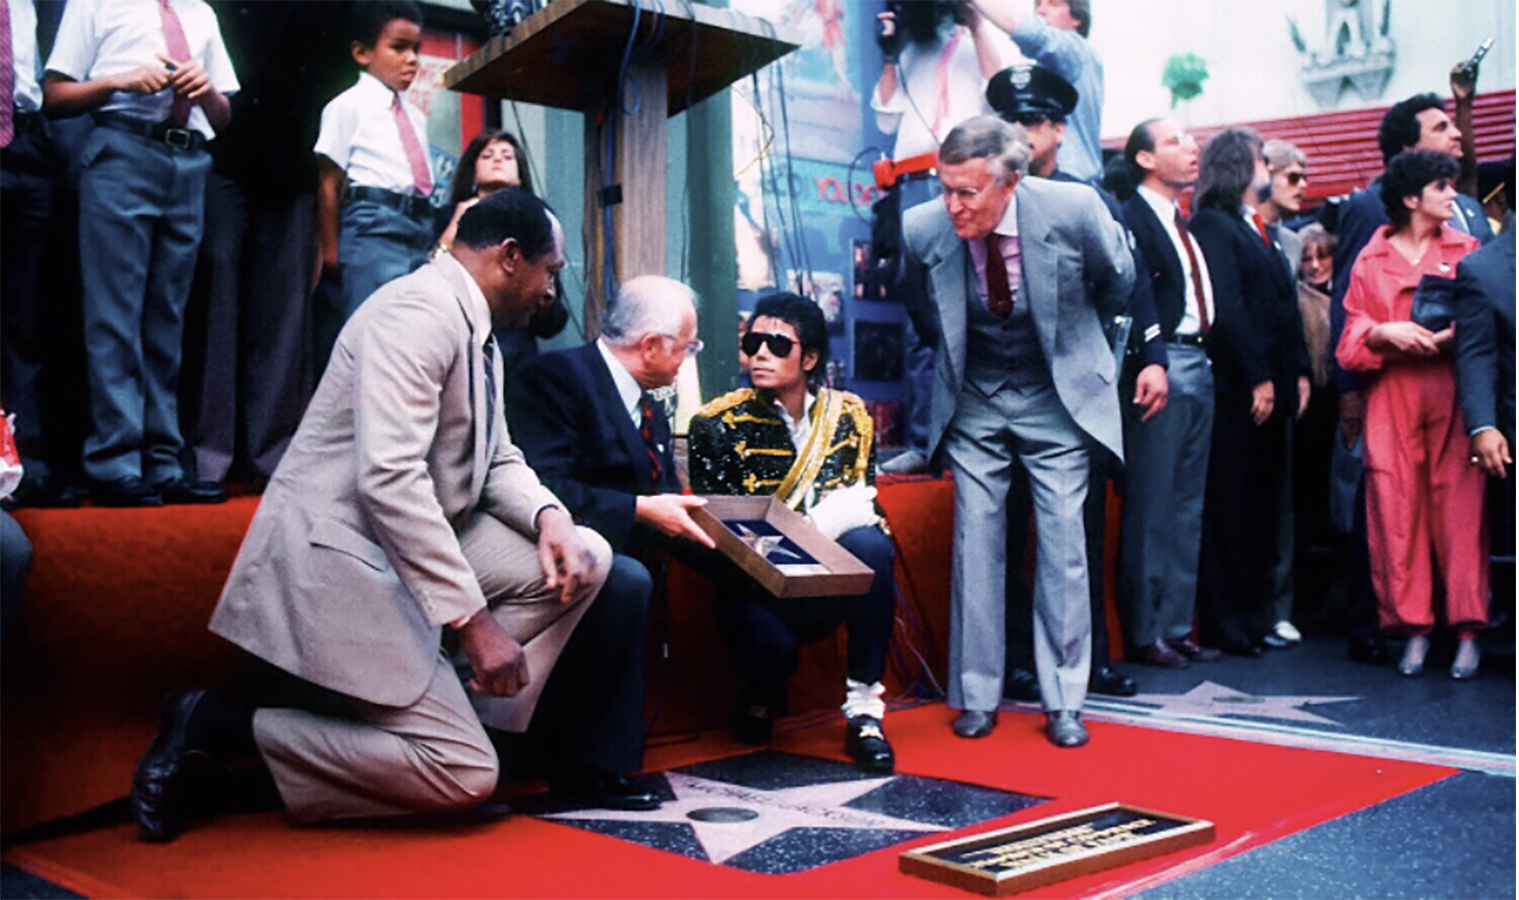 On This Day in 1984, Michael Jackson Received A Star On The Hollywood Walk of Fame